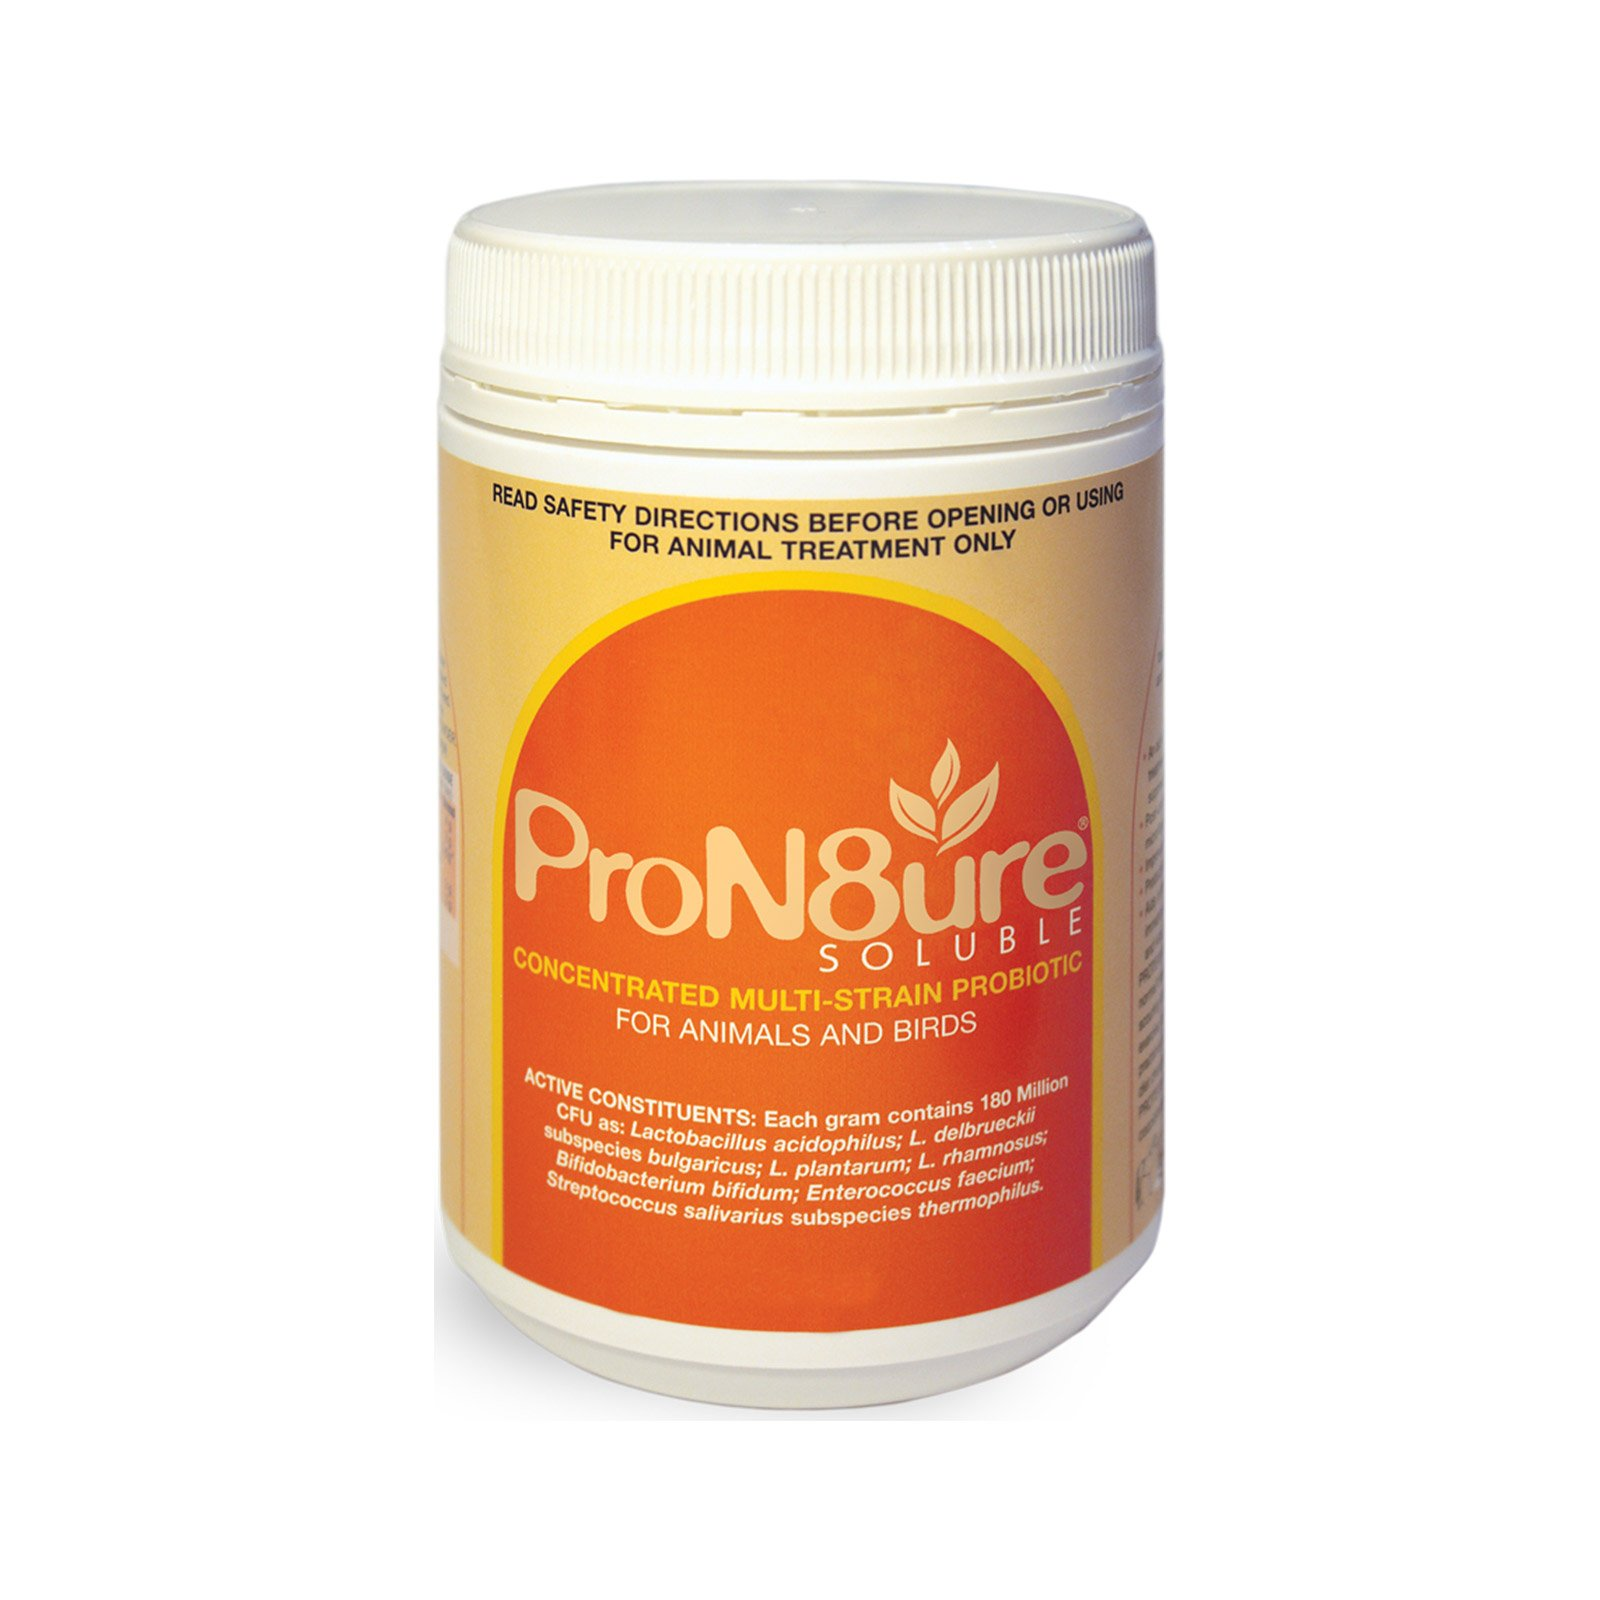 PRON8URE (PROTEXIN) SOLUBLE